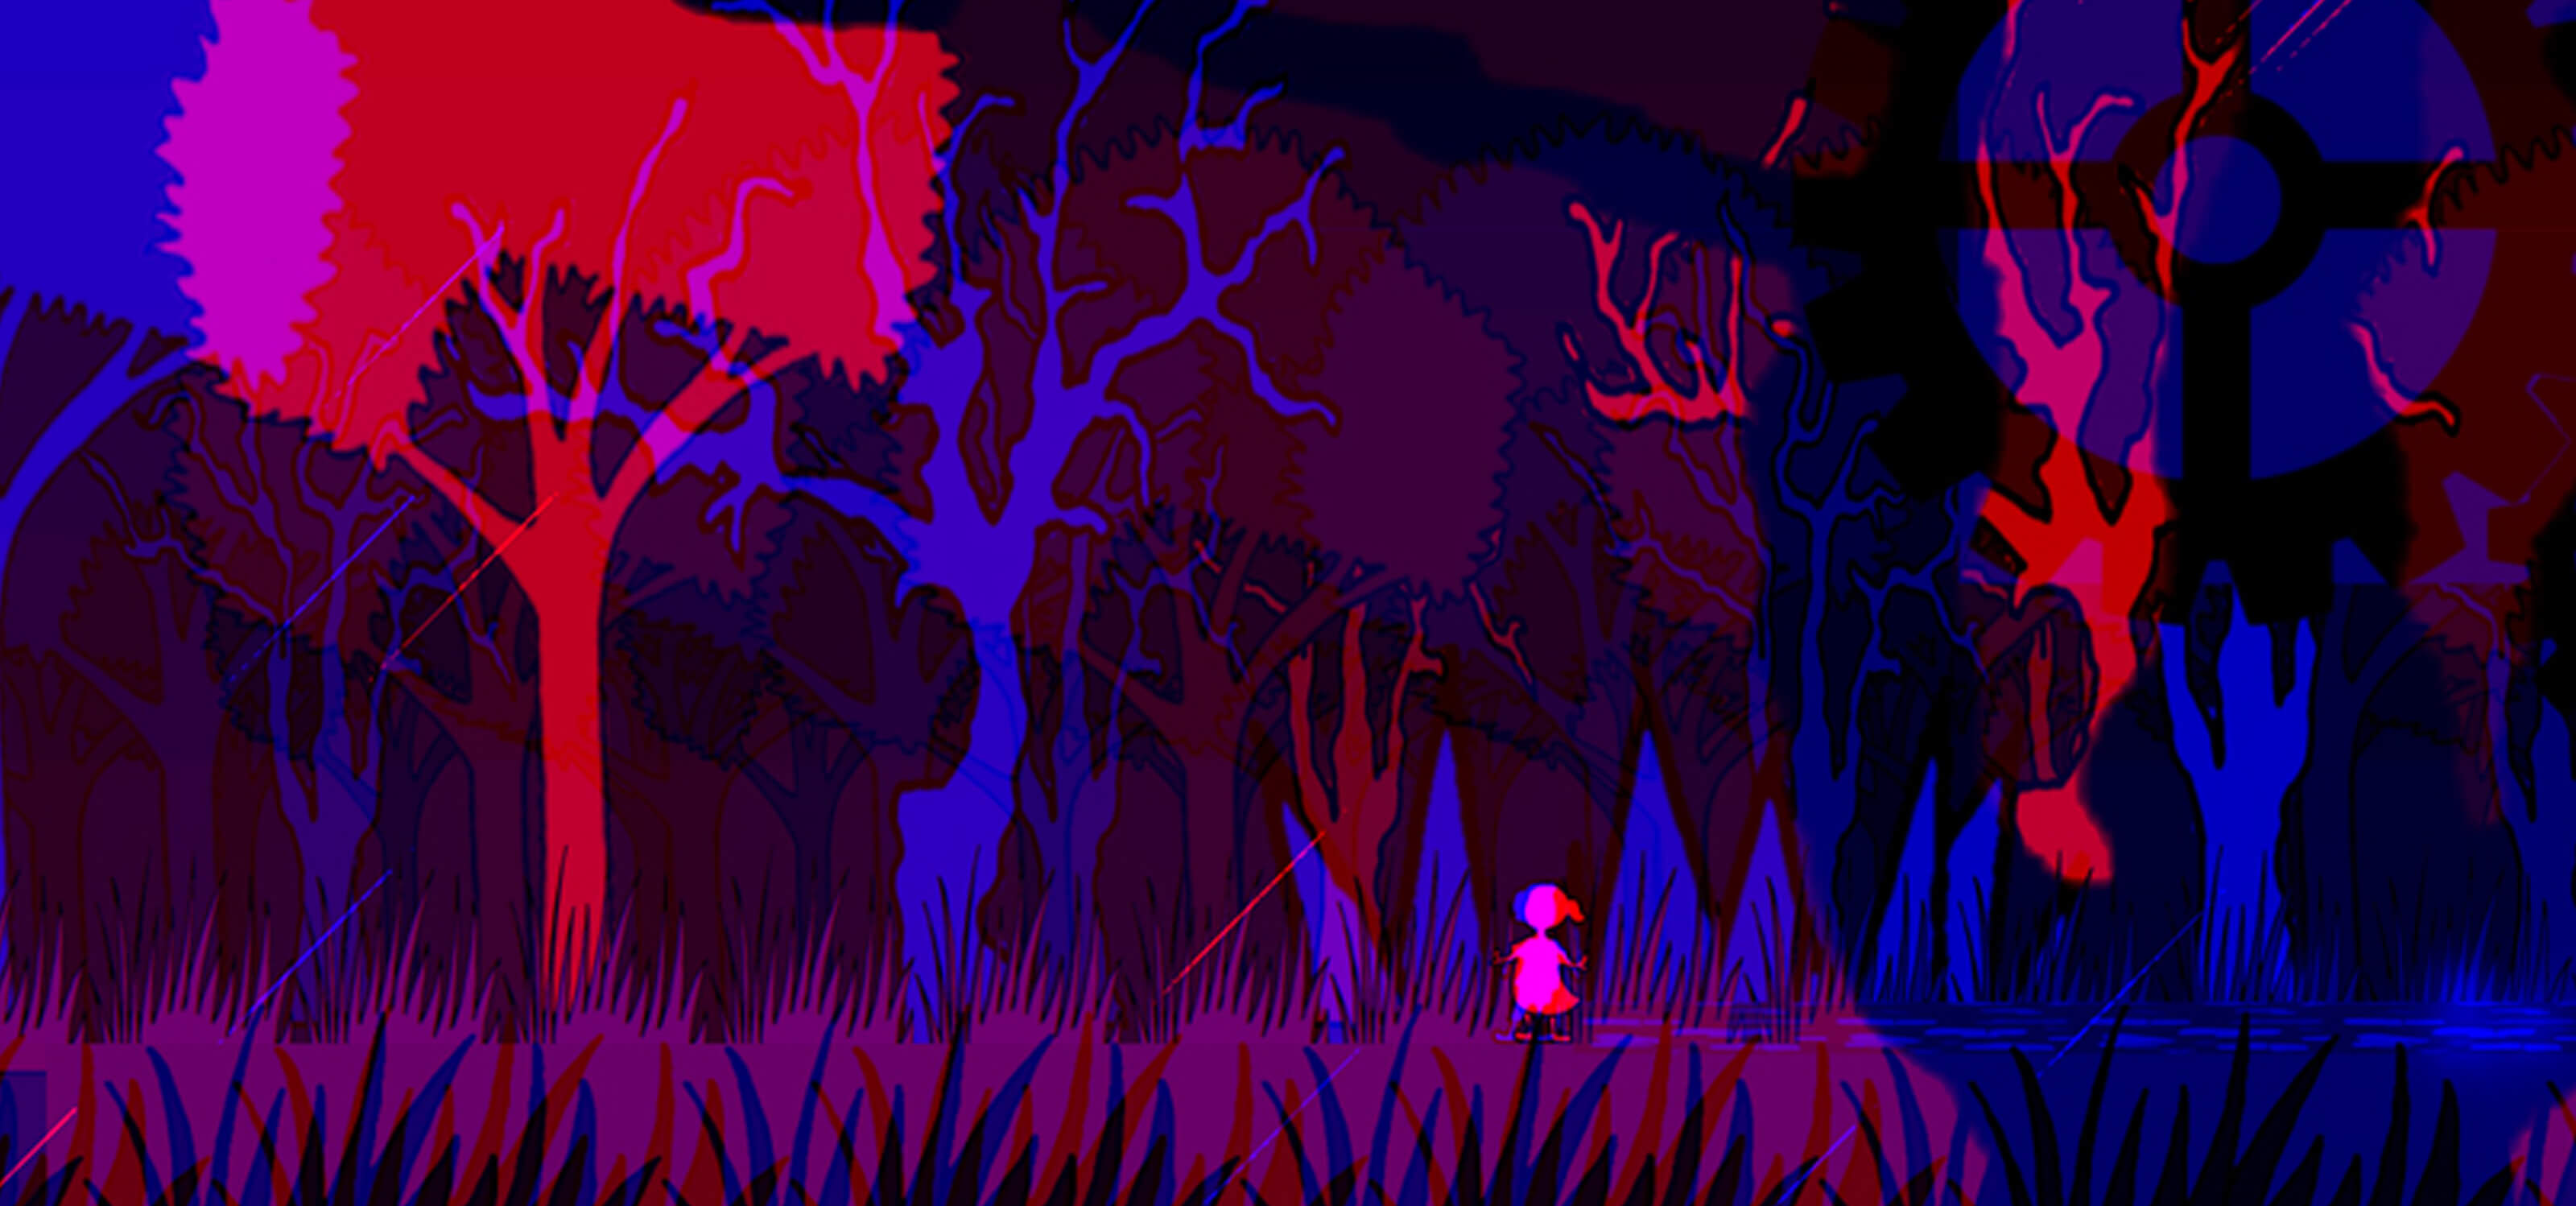 Screenshot from DigiPen student game Sunder of a small girl in a forest of blue, red and purple trees